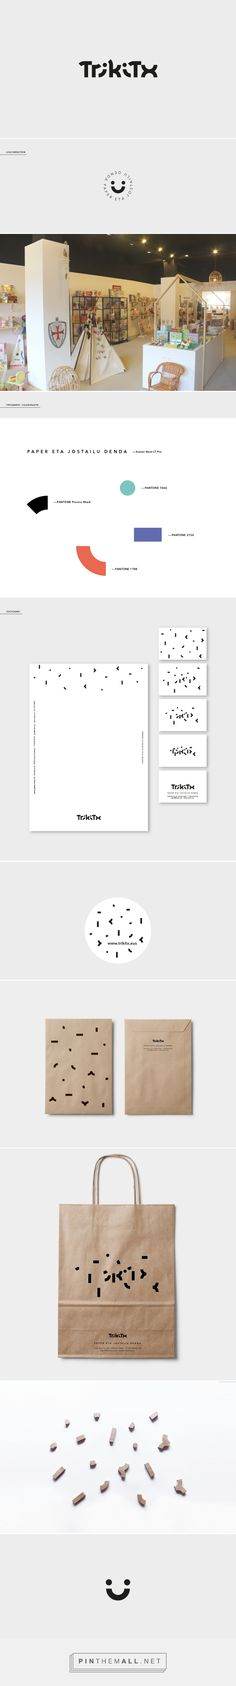 Trikitx on Behance... - a grouped images picture - Pin Them All